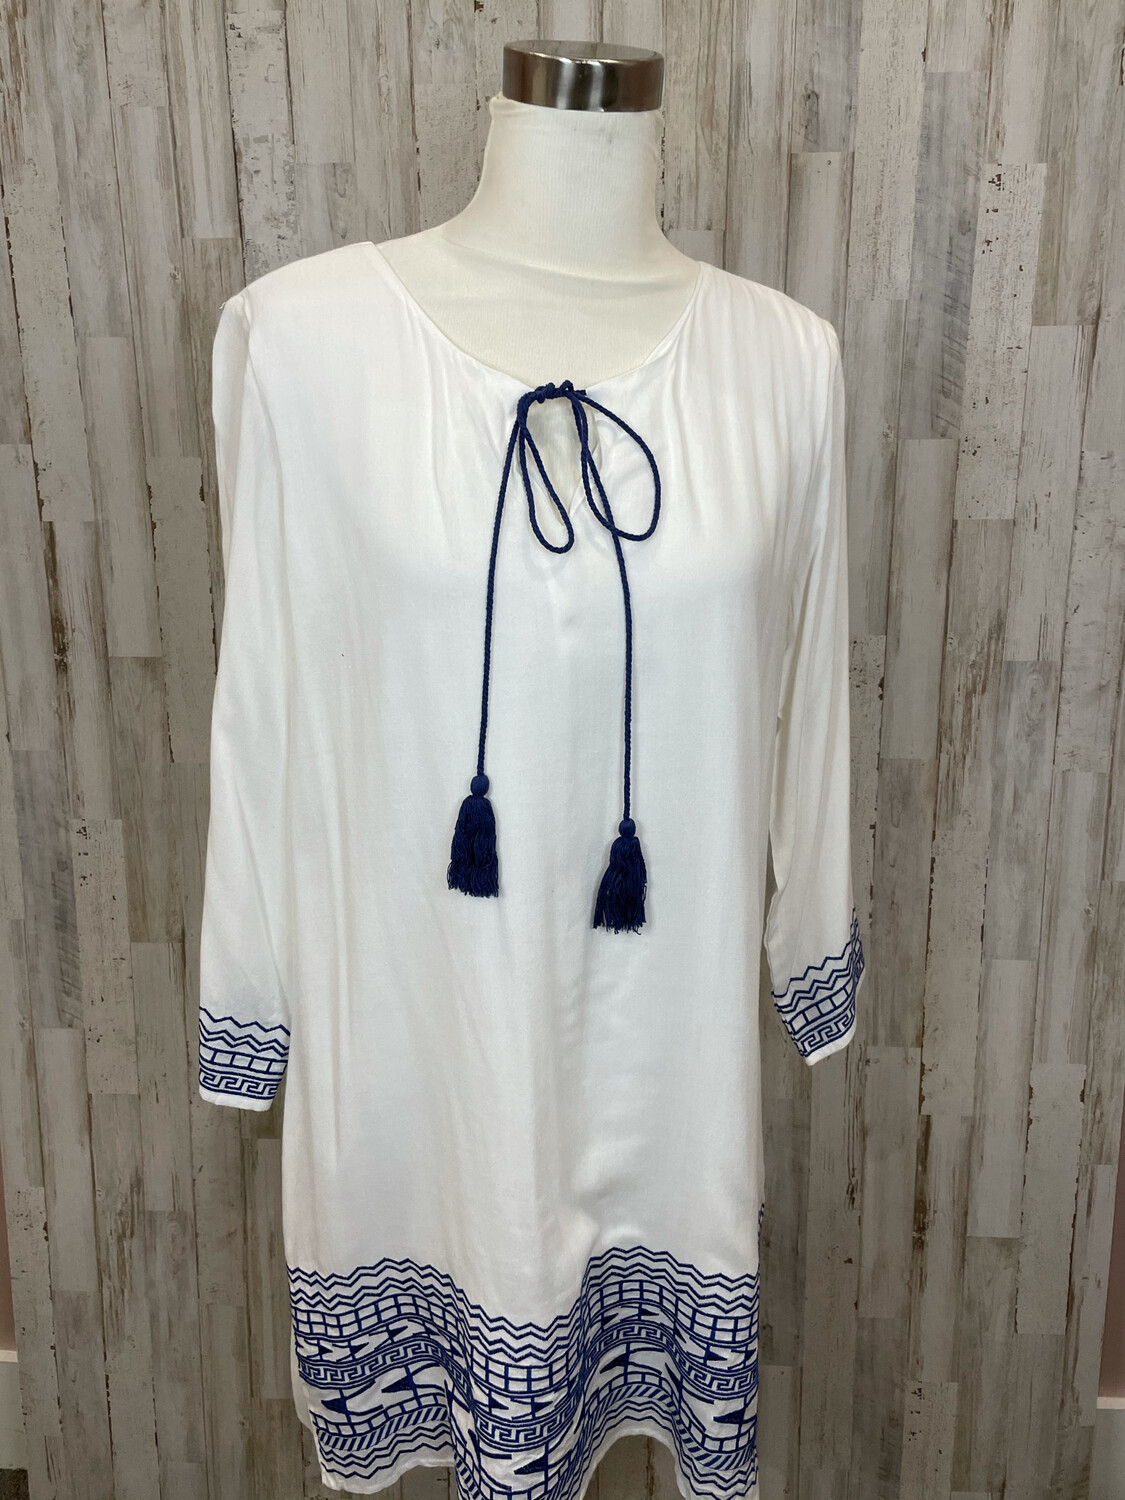 Entro White Dress w/ Navy Embroidery and Tassels - M